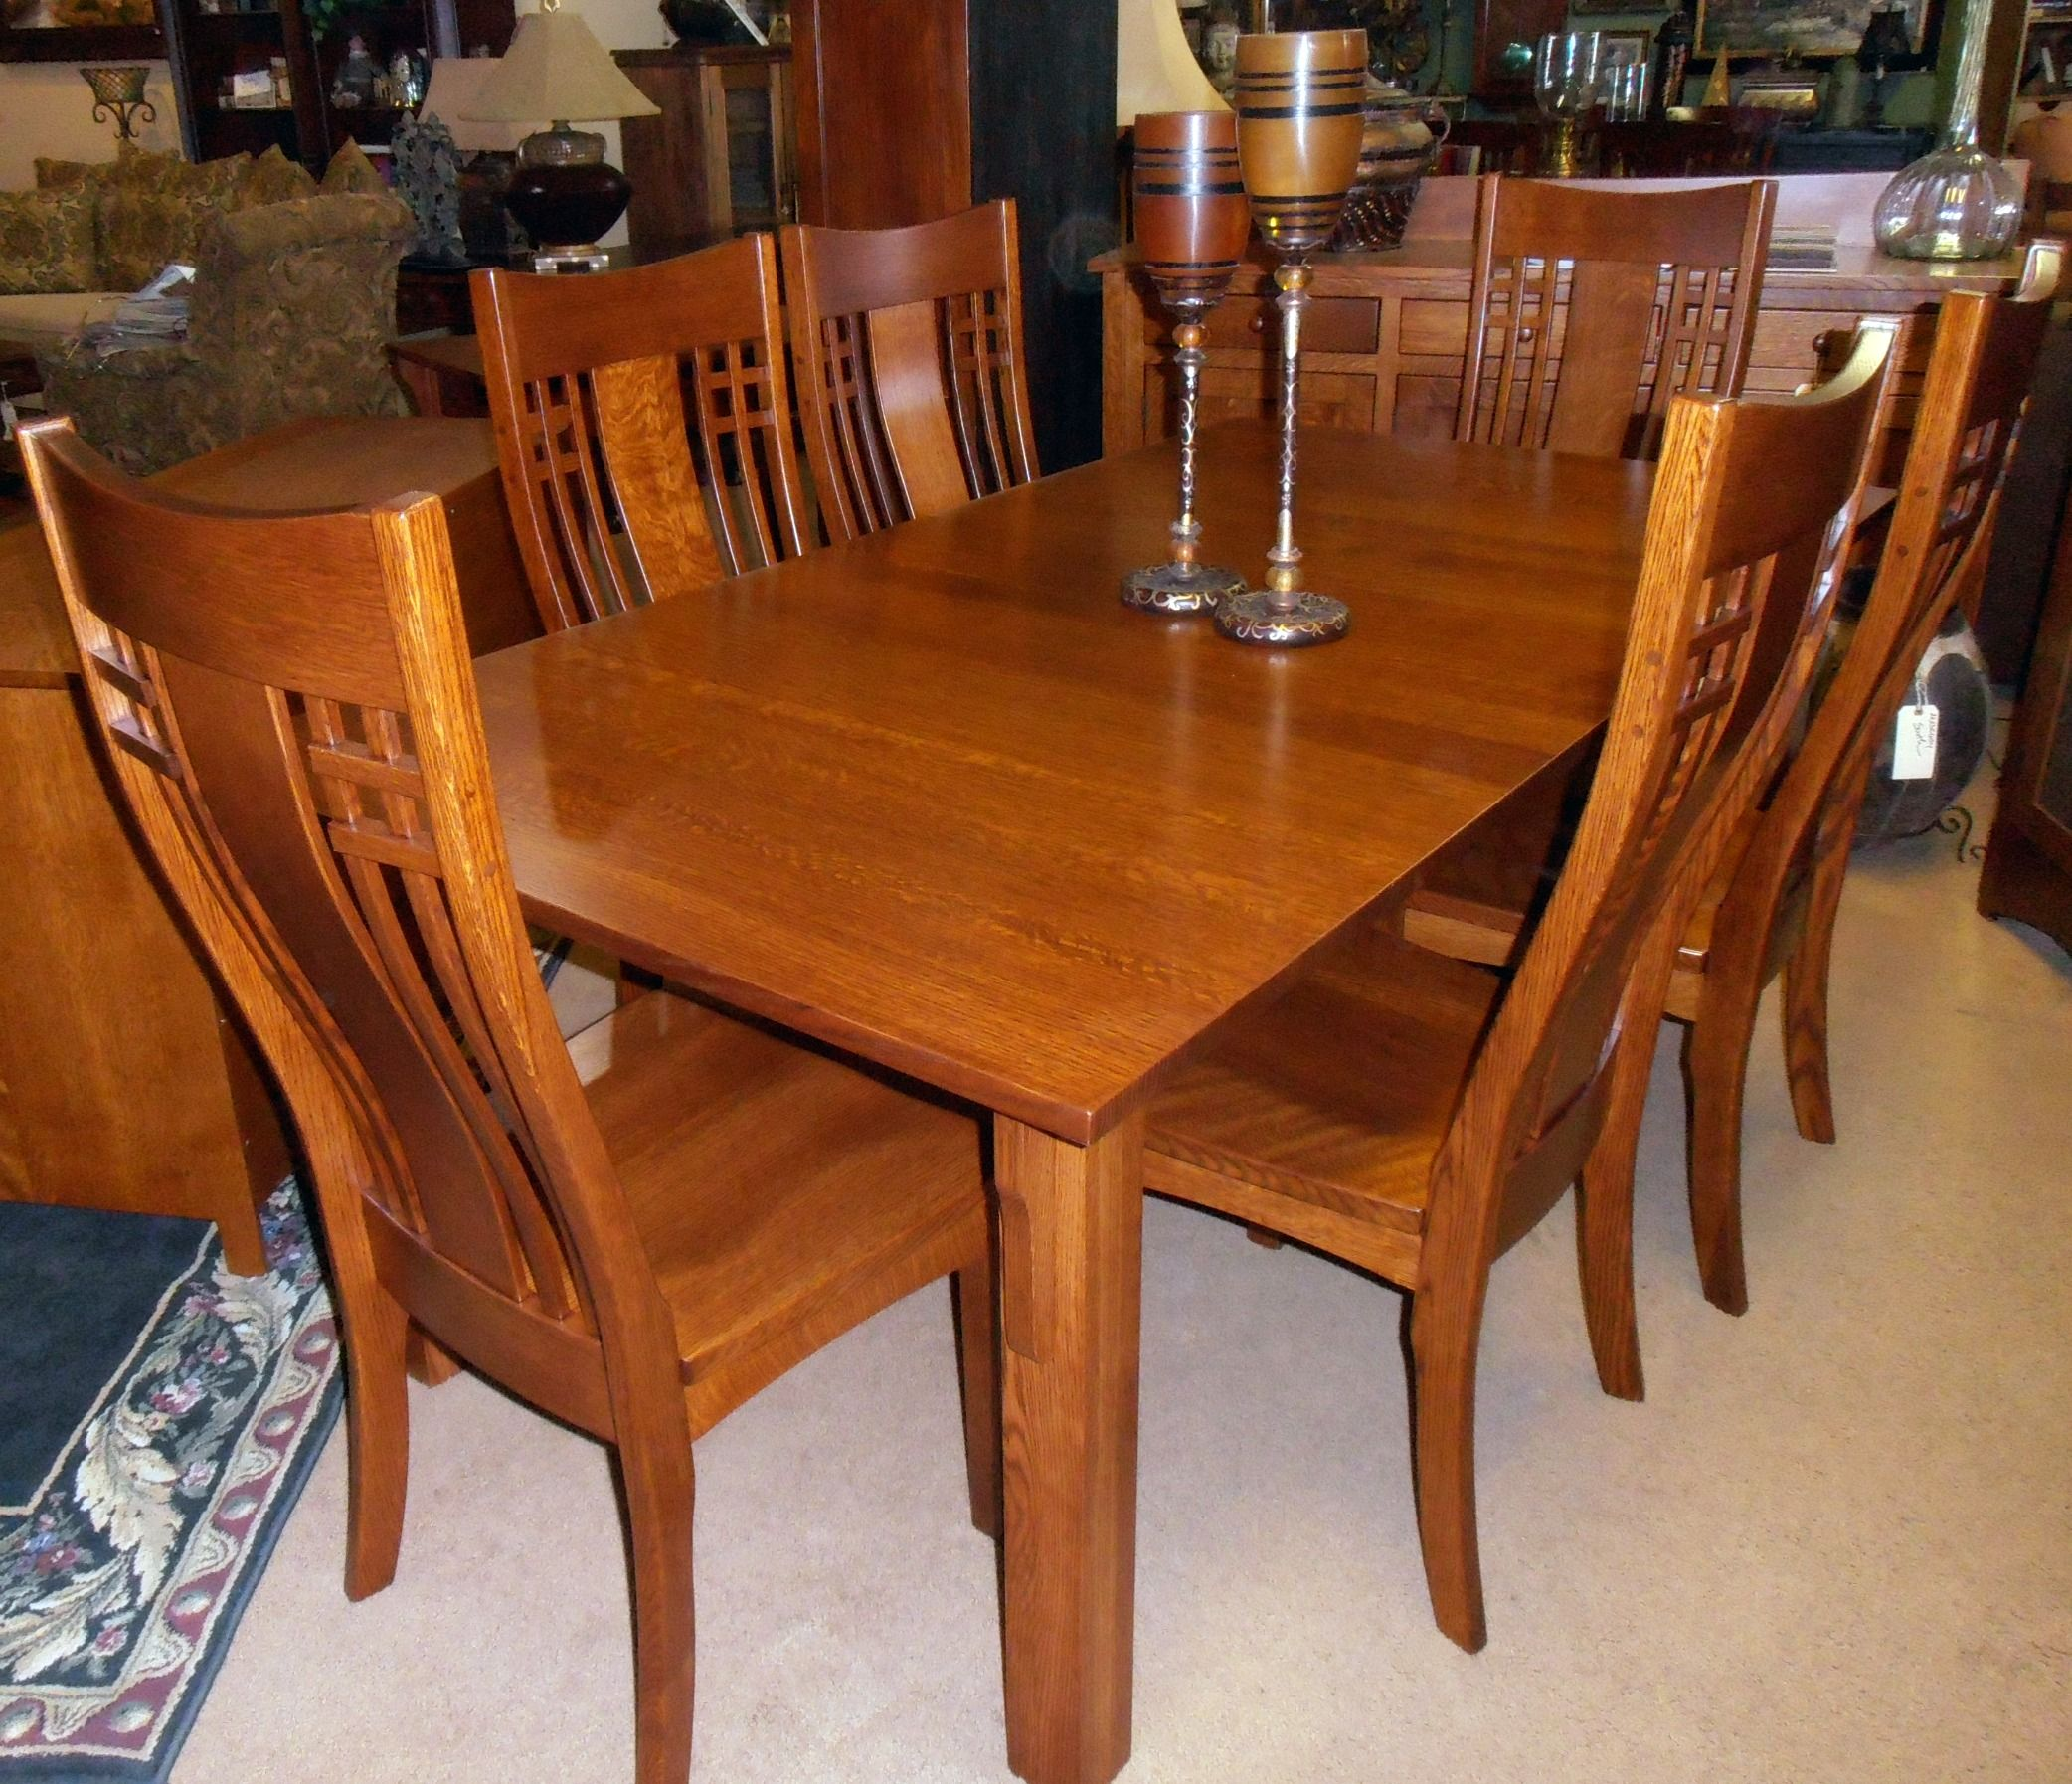 Craftsman Style Dining Room Furniture: Craftsman Style Dining Table